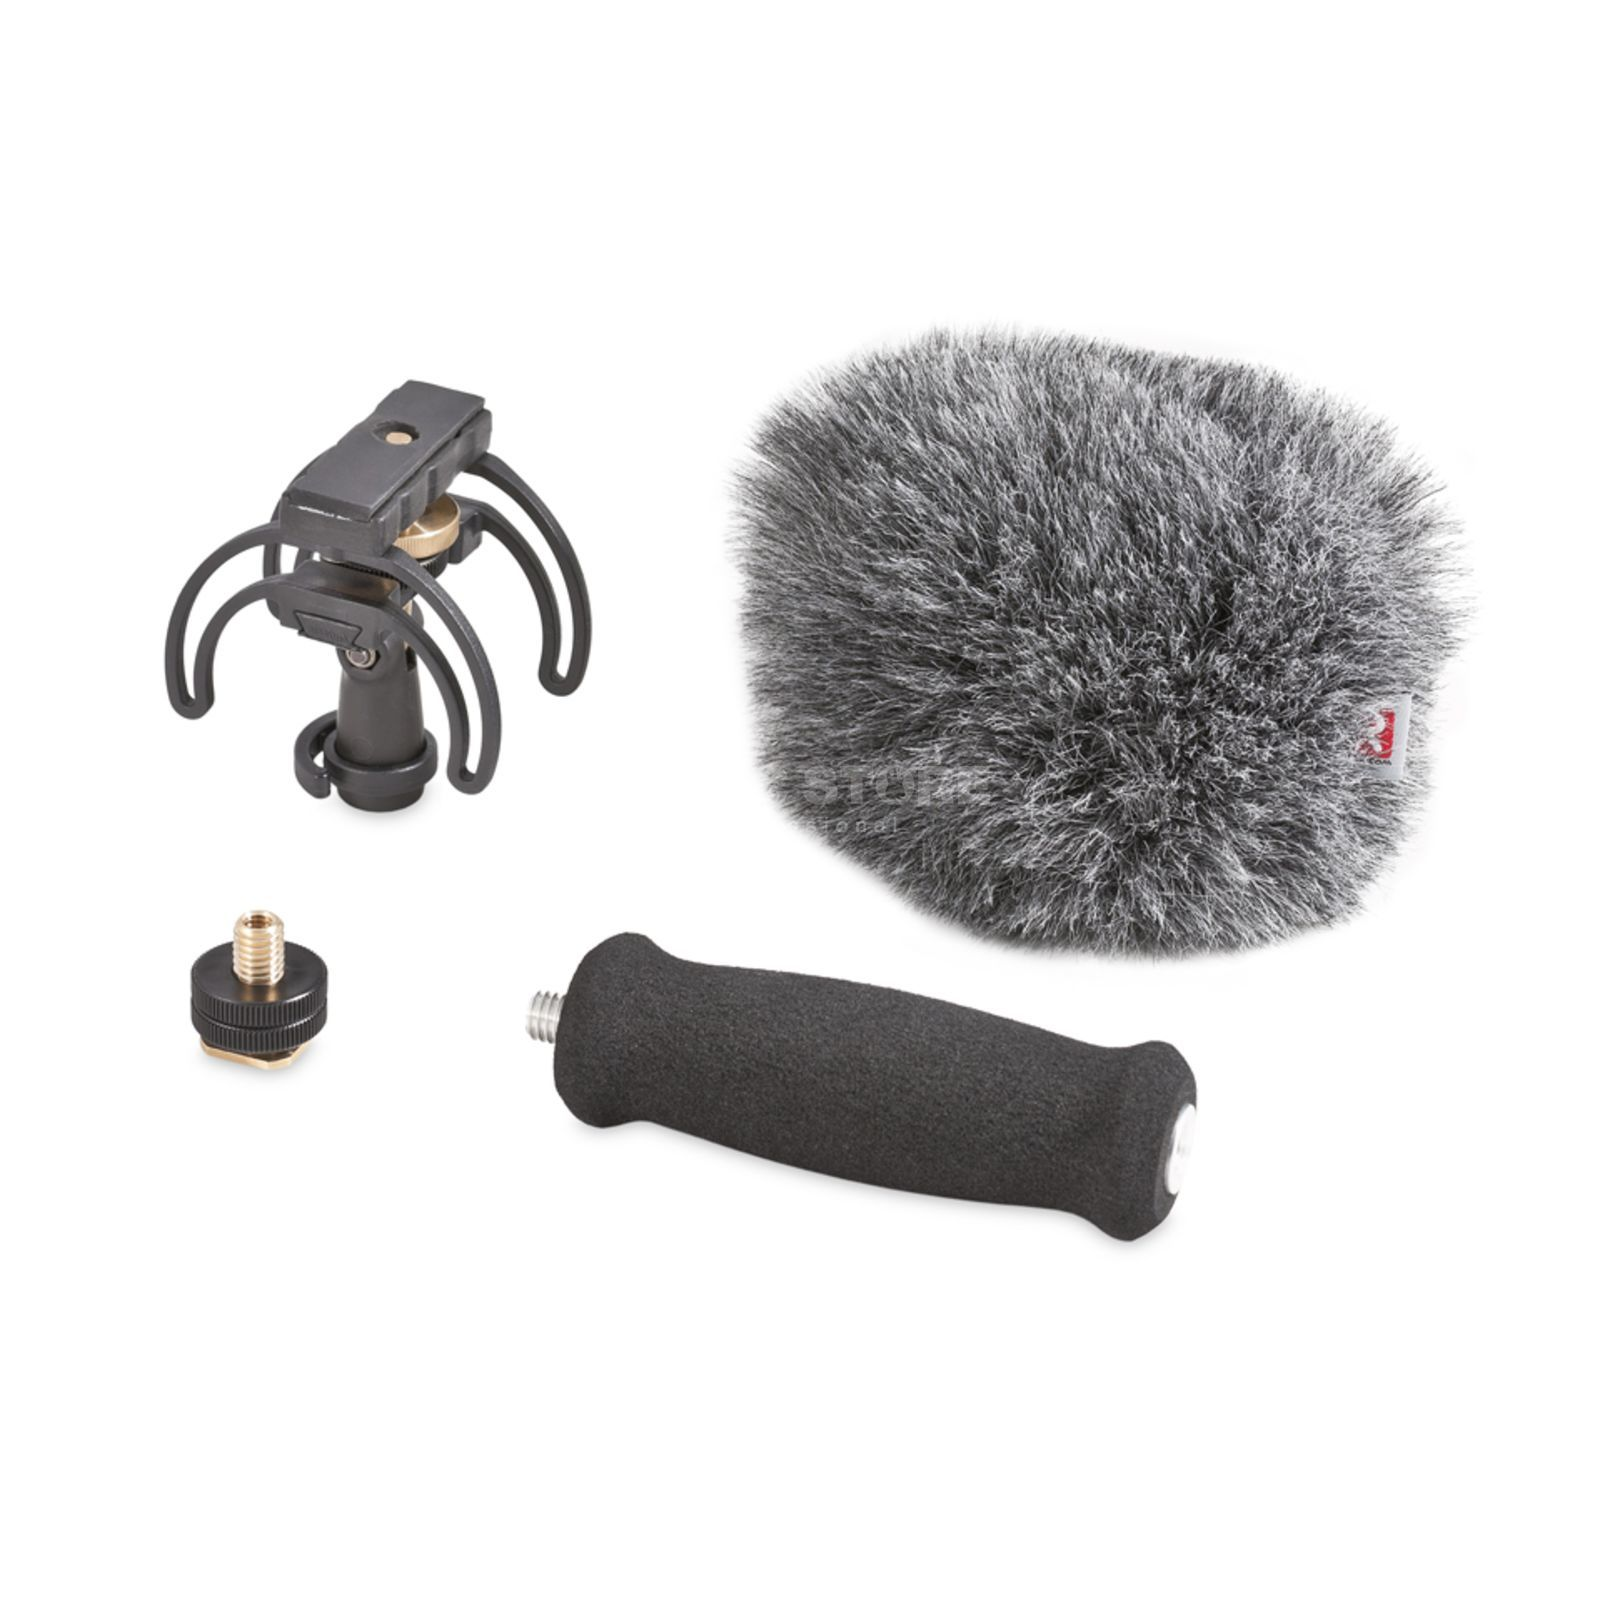 Rycote Recorder Kit for Roland R-26 Suspension+Windjammer Produktbillede